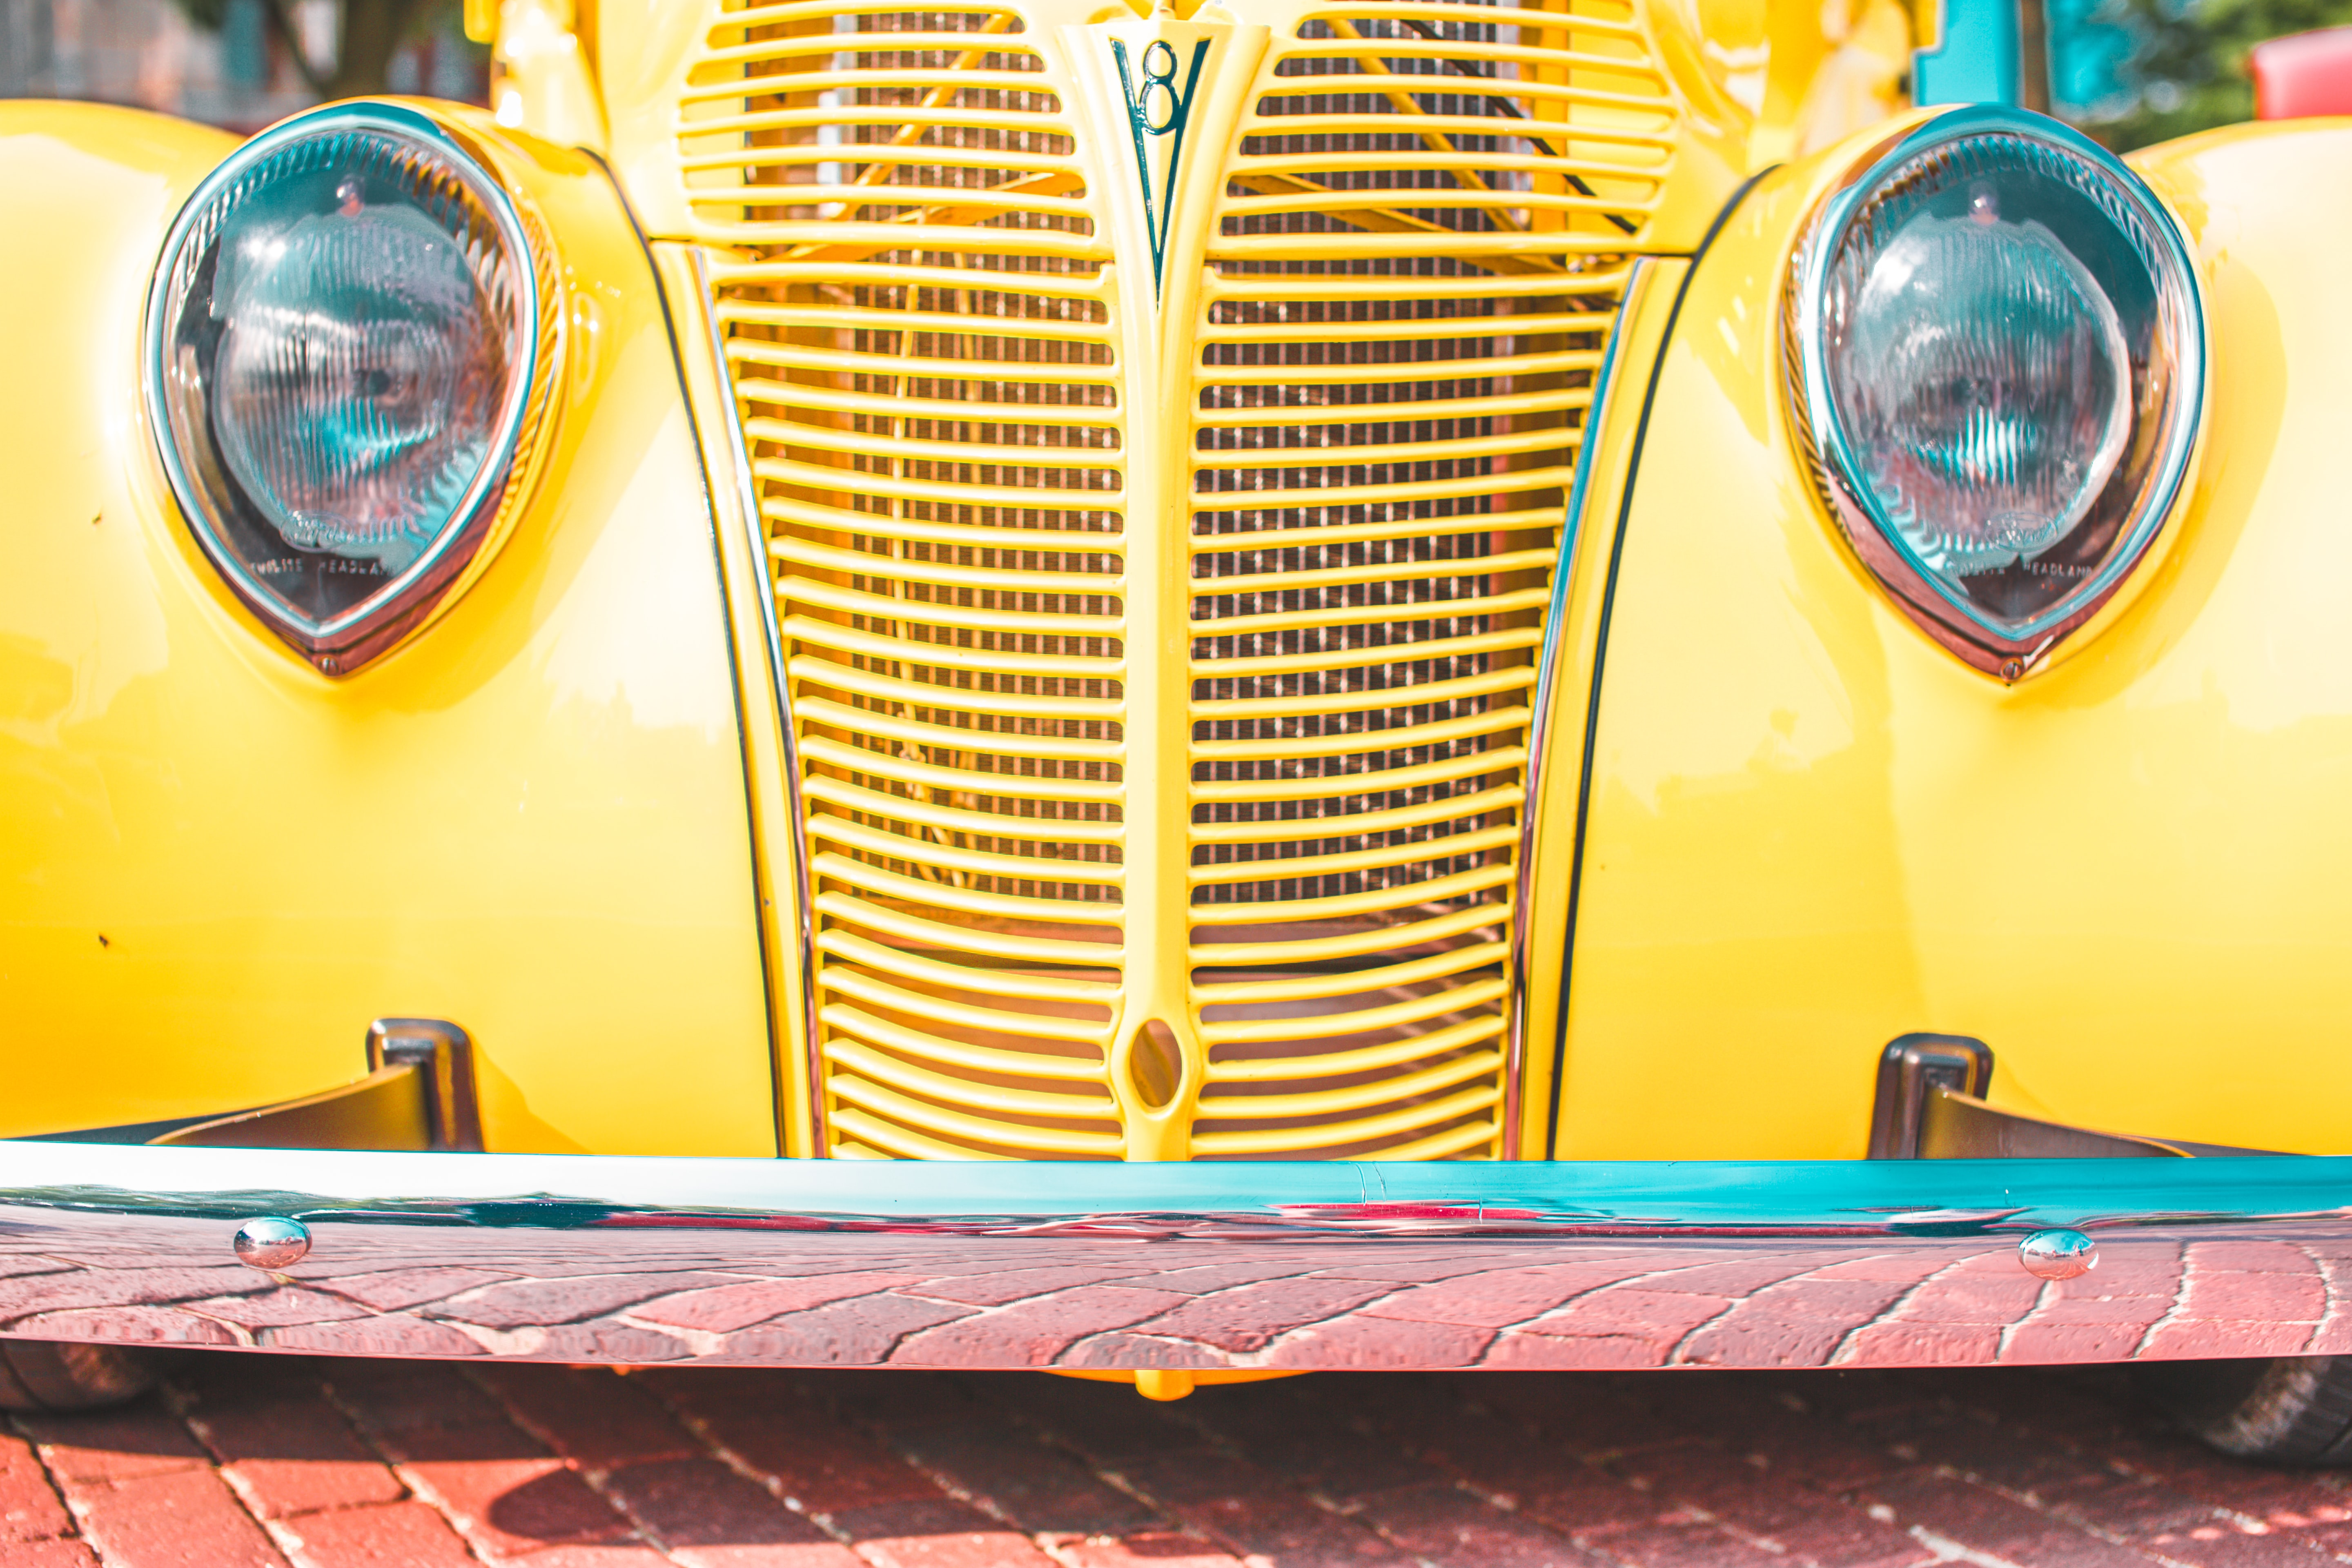 classic yellow and teal vehicle